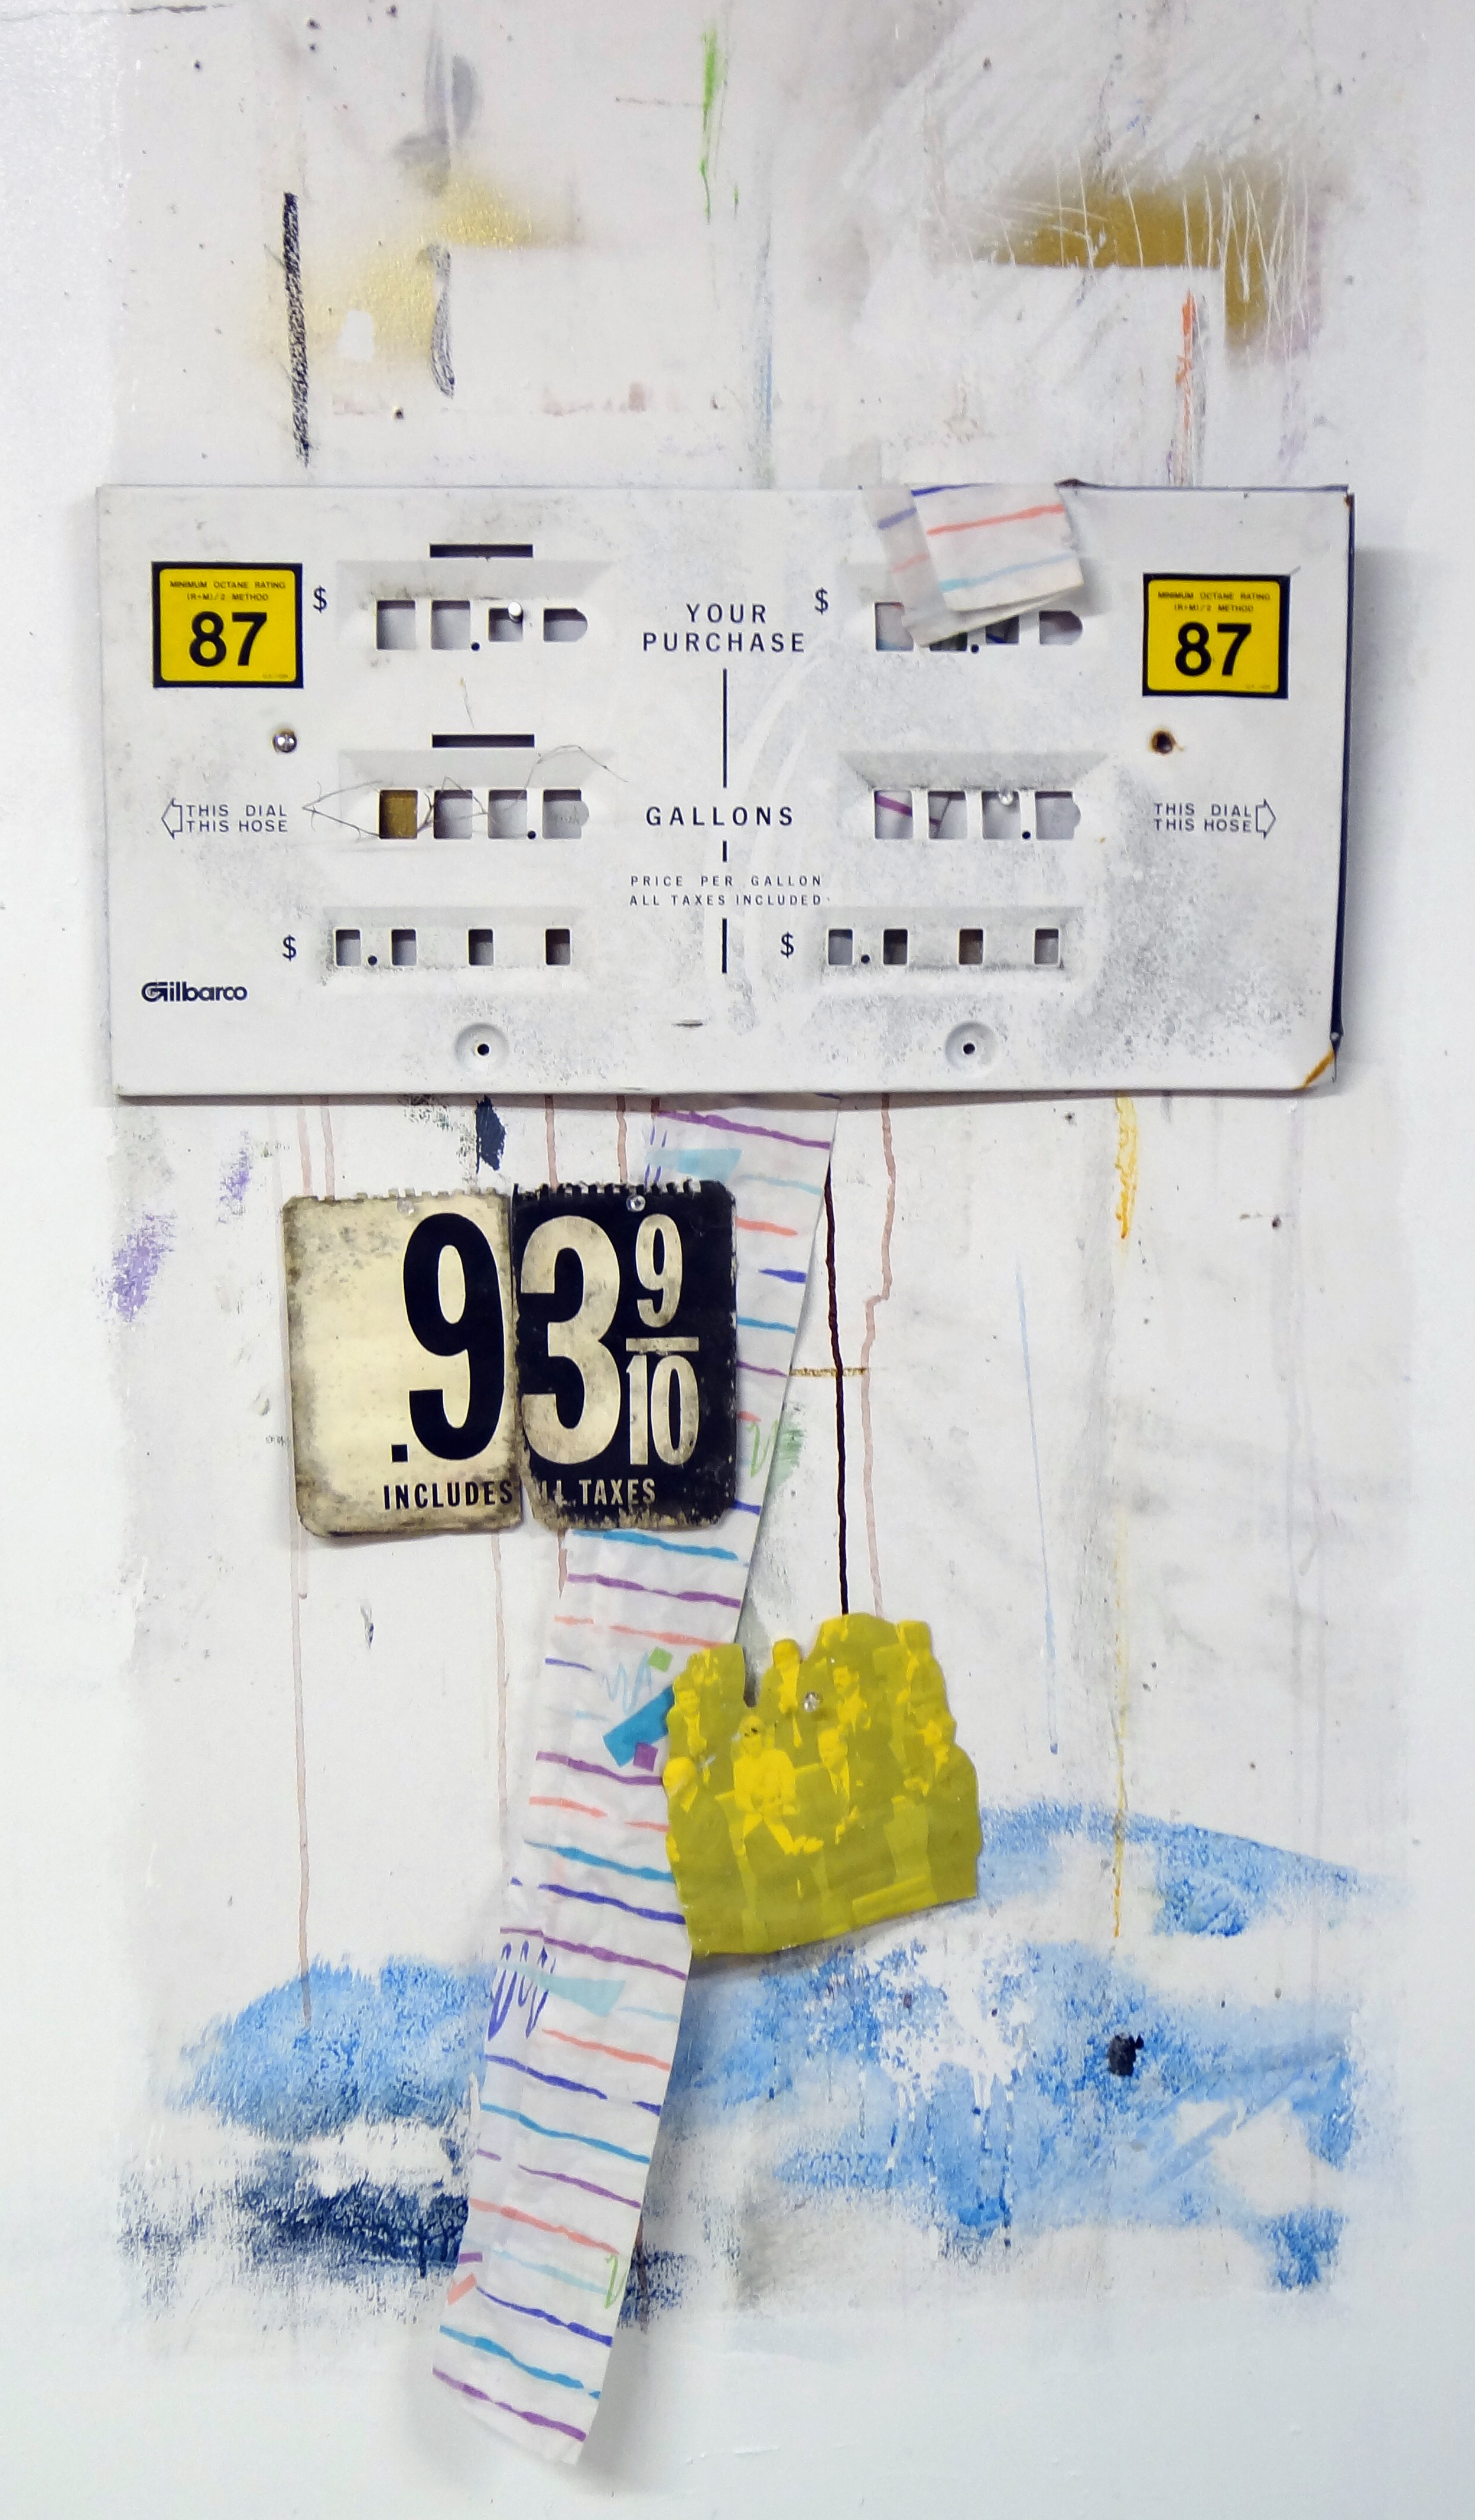 photo collage of found object construction, 2011